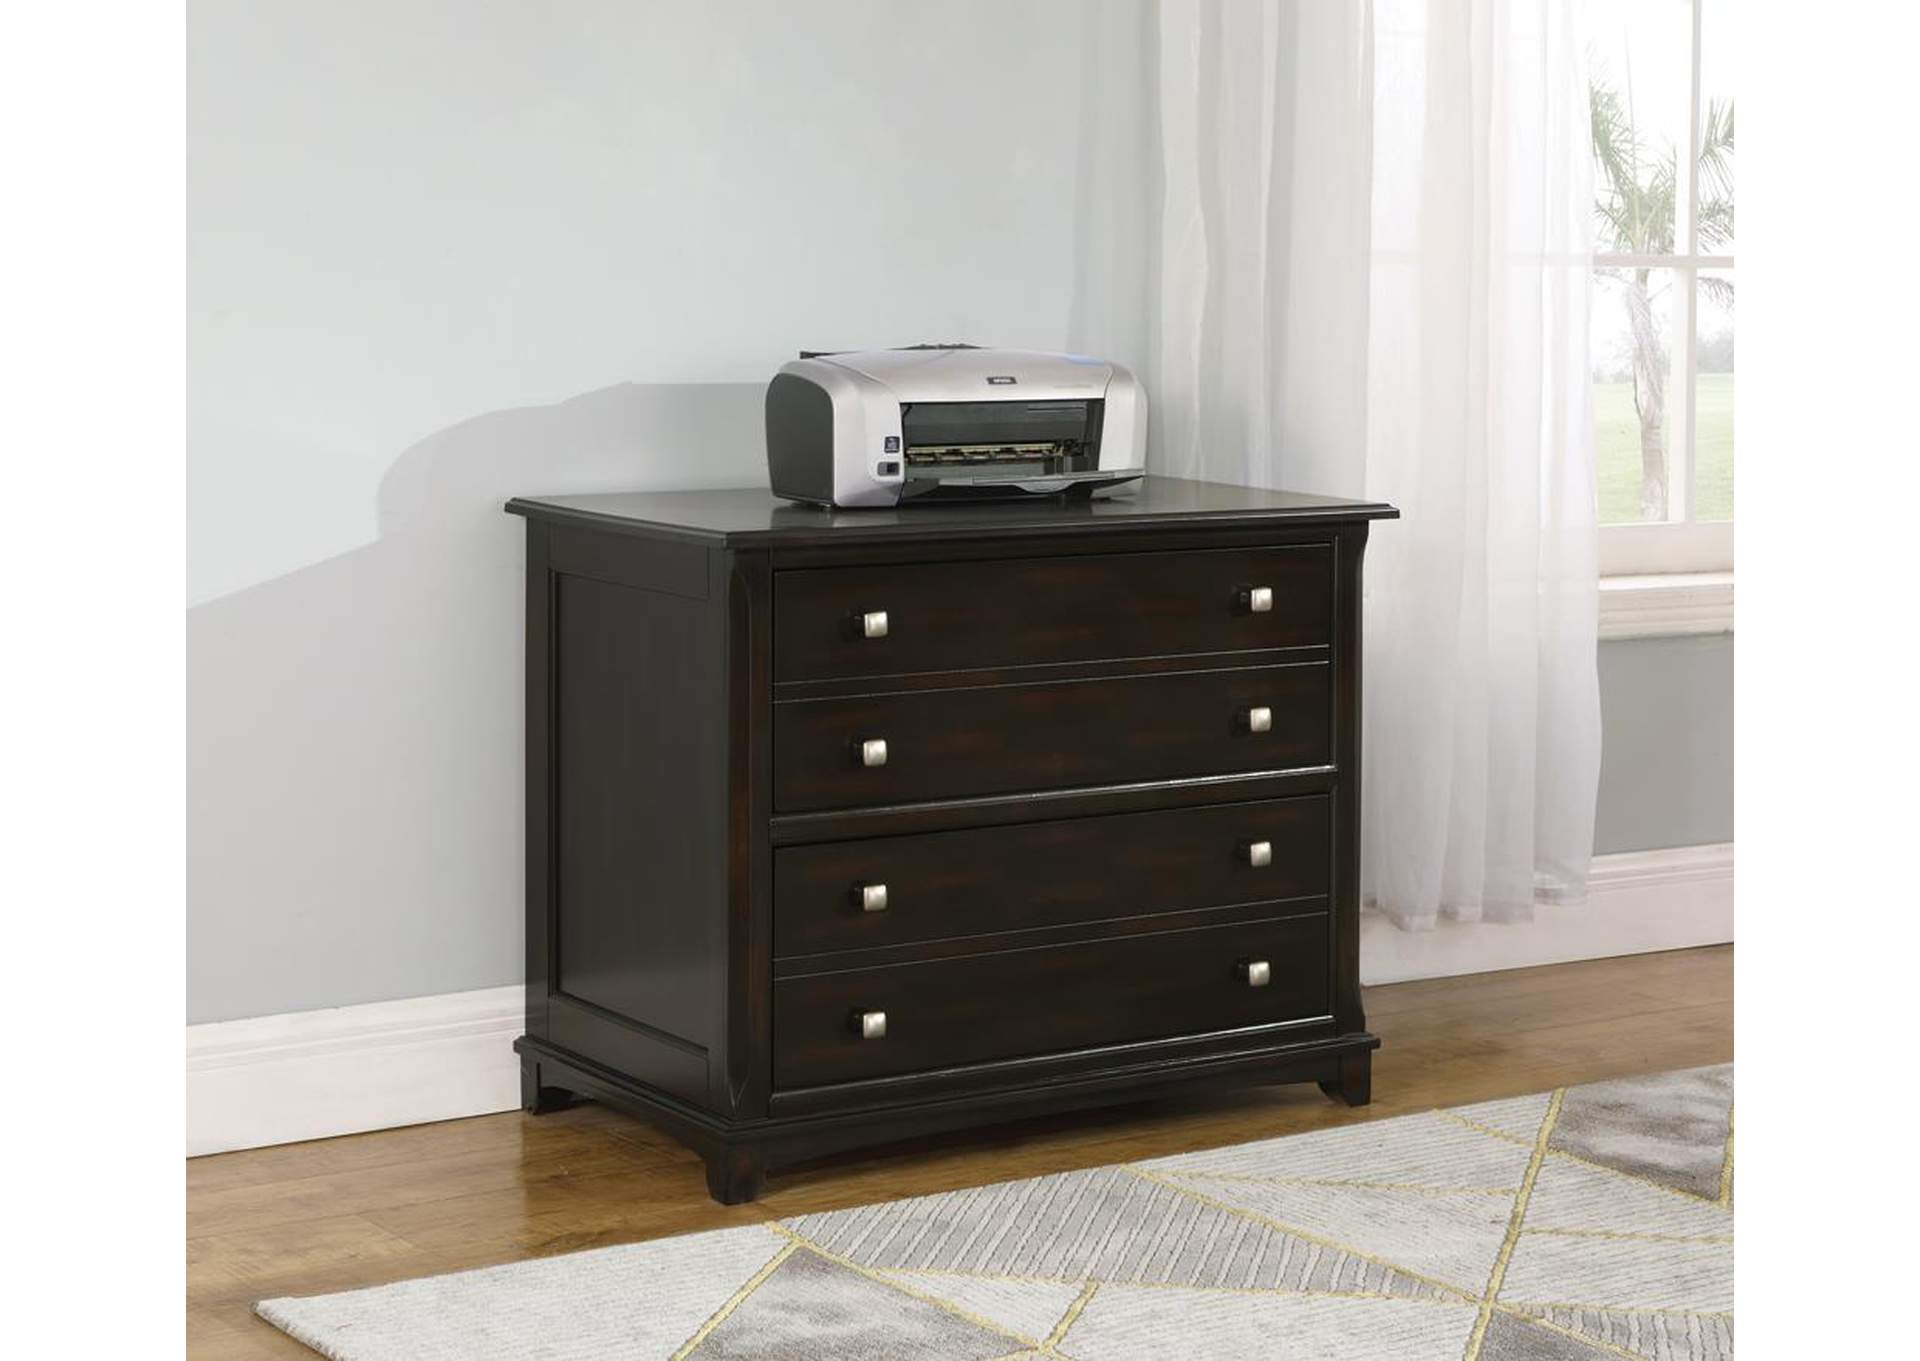 Garson Walnut File Cabinet,Coaster Furniture